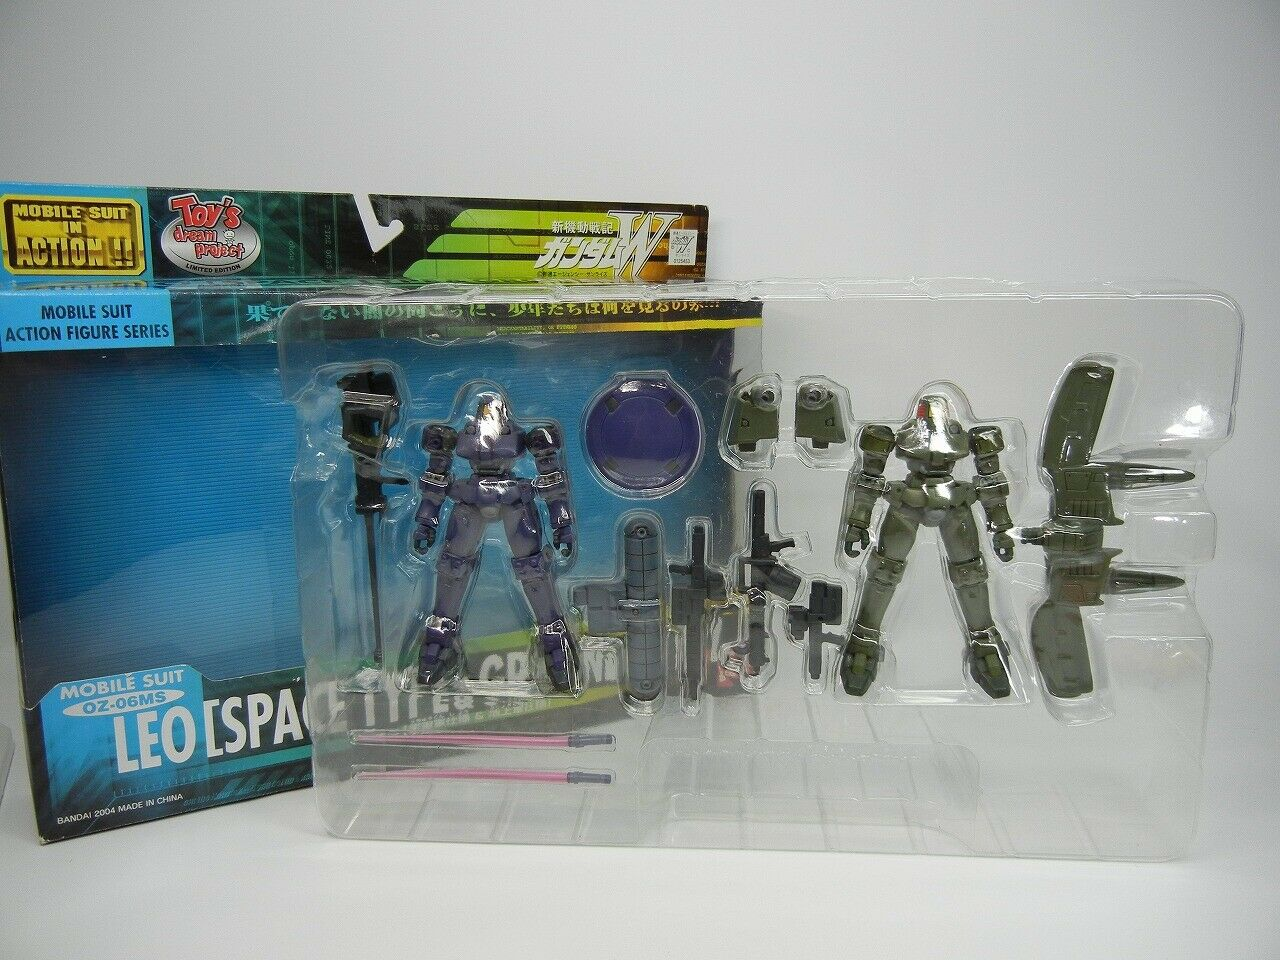 MSIA giocattolo's dream project limited    OZ-06MS LEO (spazio&GROUND) 2 Type set  BeAI  forma unica